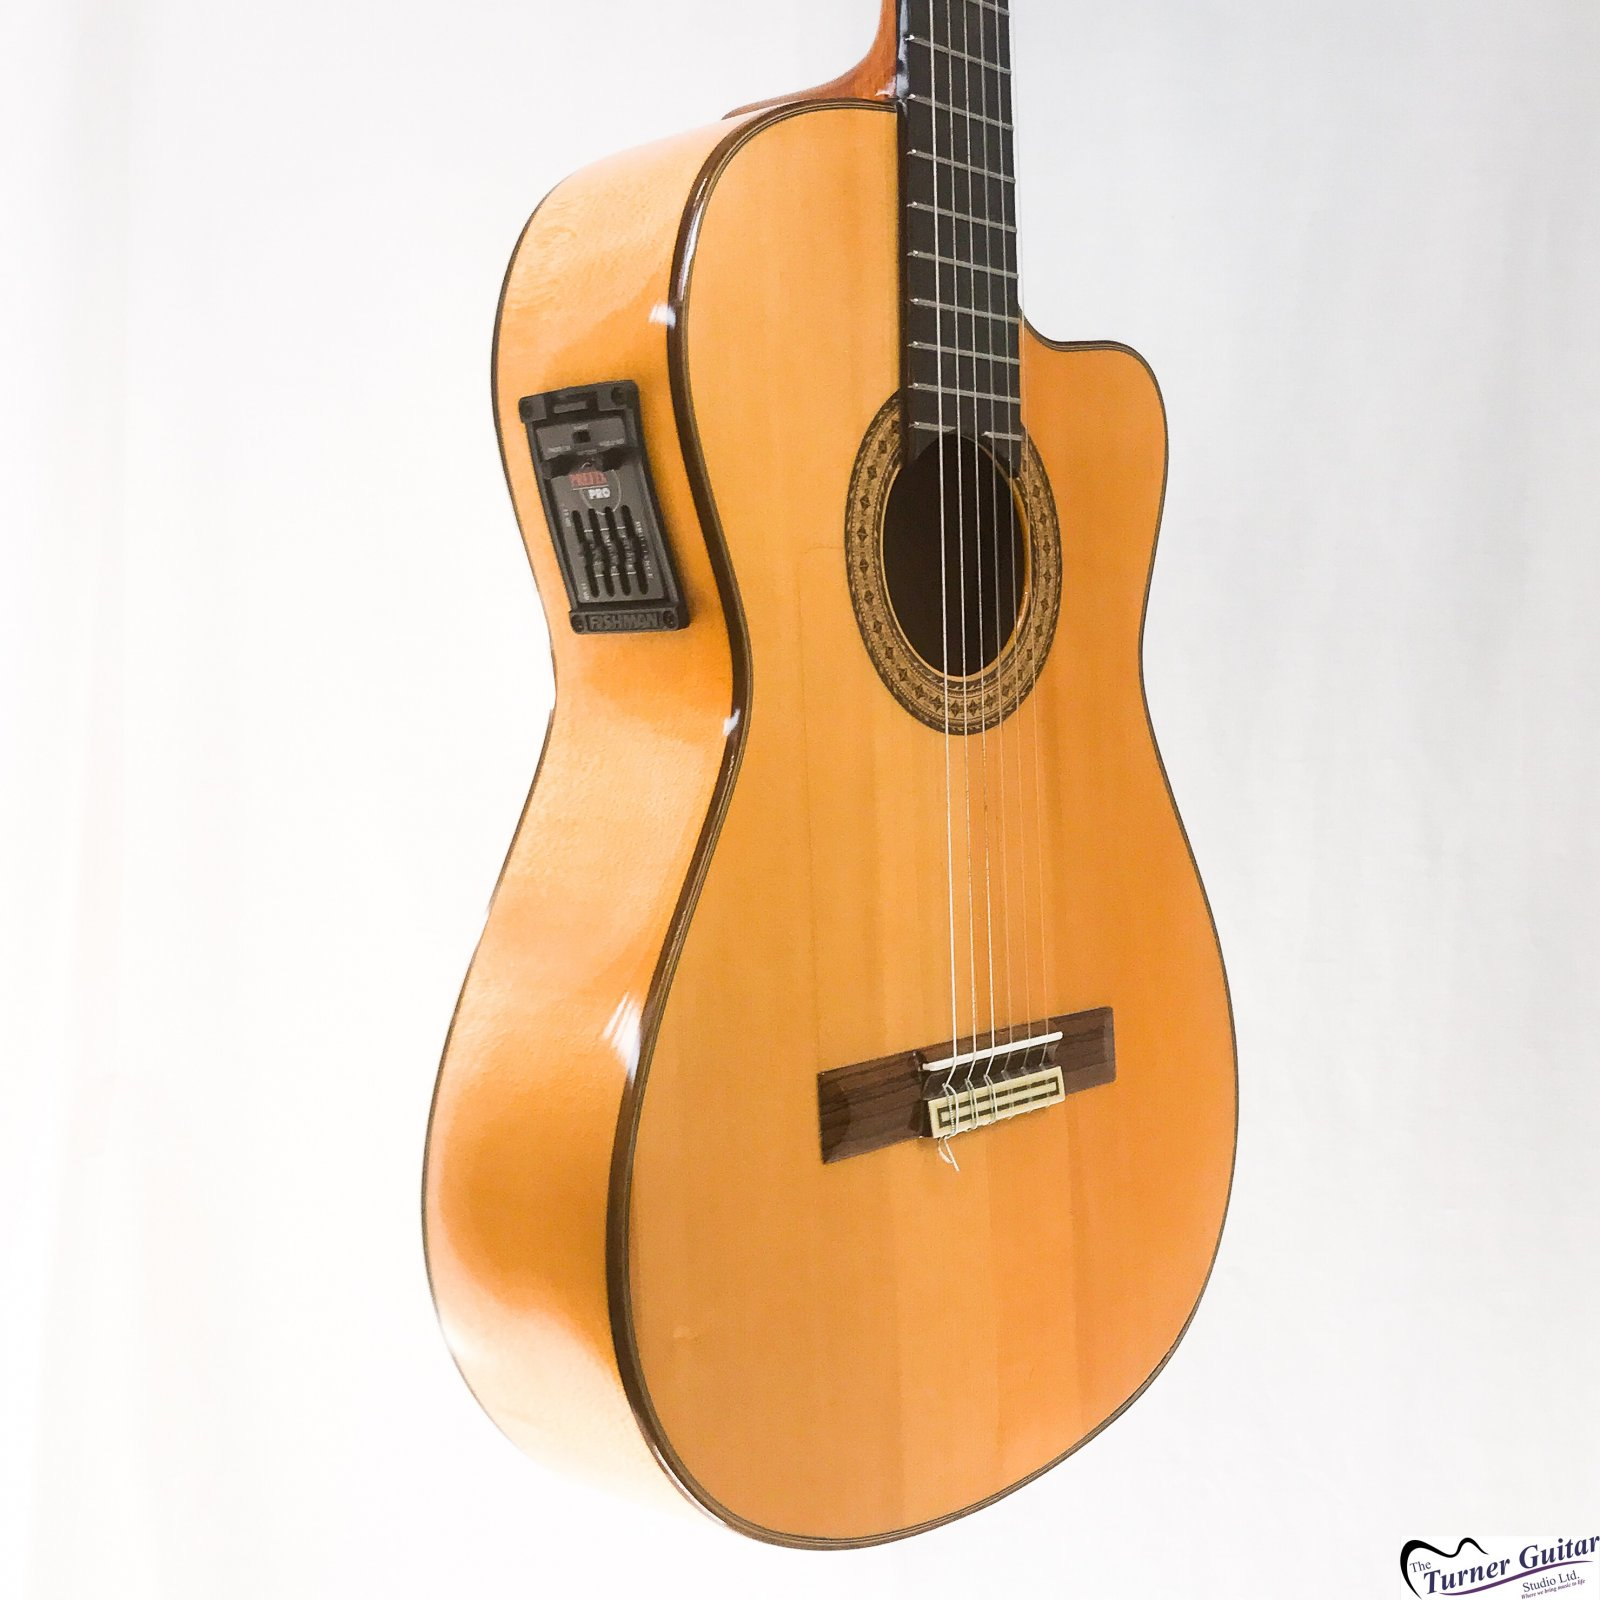 Aria AC70 Concert Series Electric Cutaway, Classical Guitar, Spanish-made (Used)